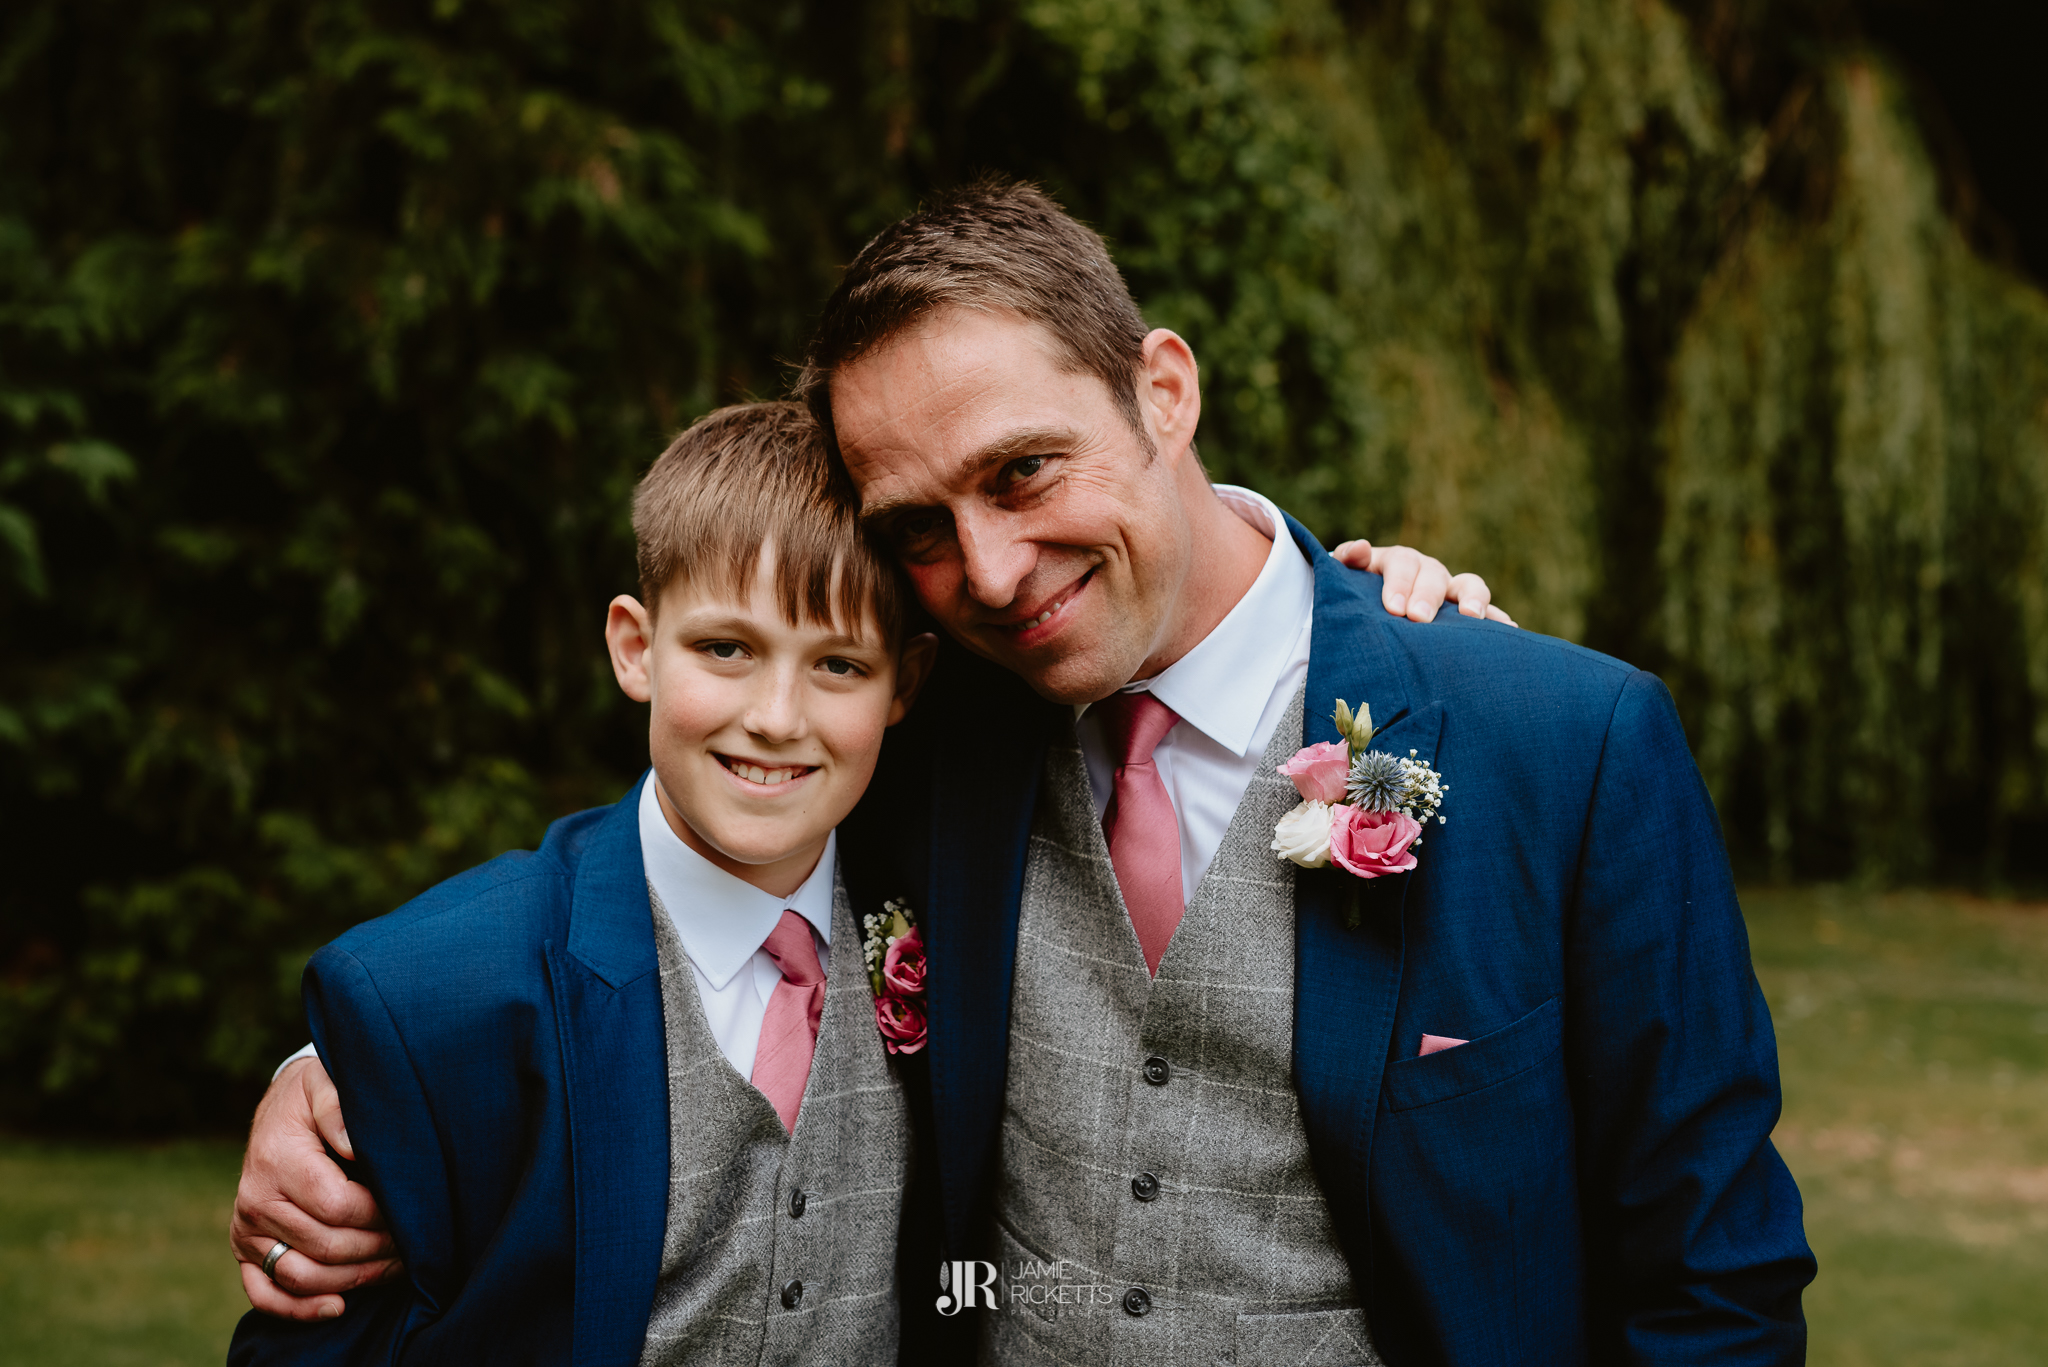 Wroxeter-Hotel-Wedding-Photography-In-Shropshire-By-Shropshire-Wedding-Photographer-Jamie-Ricketts-103.JPG